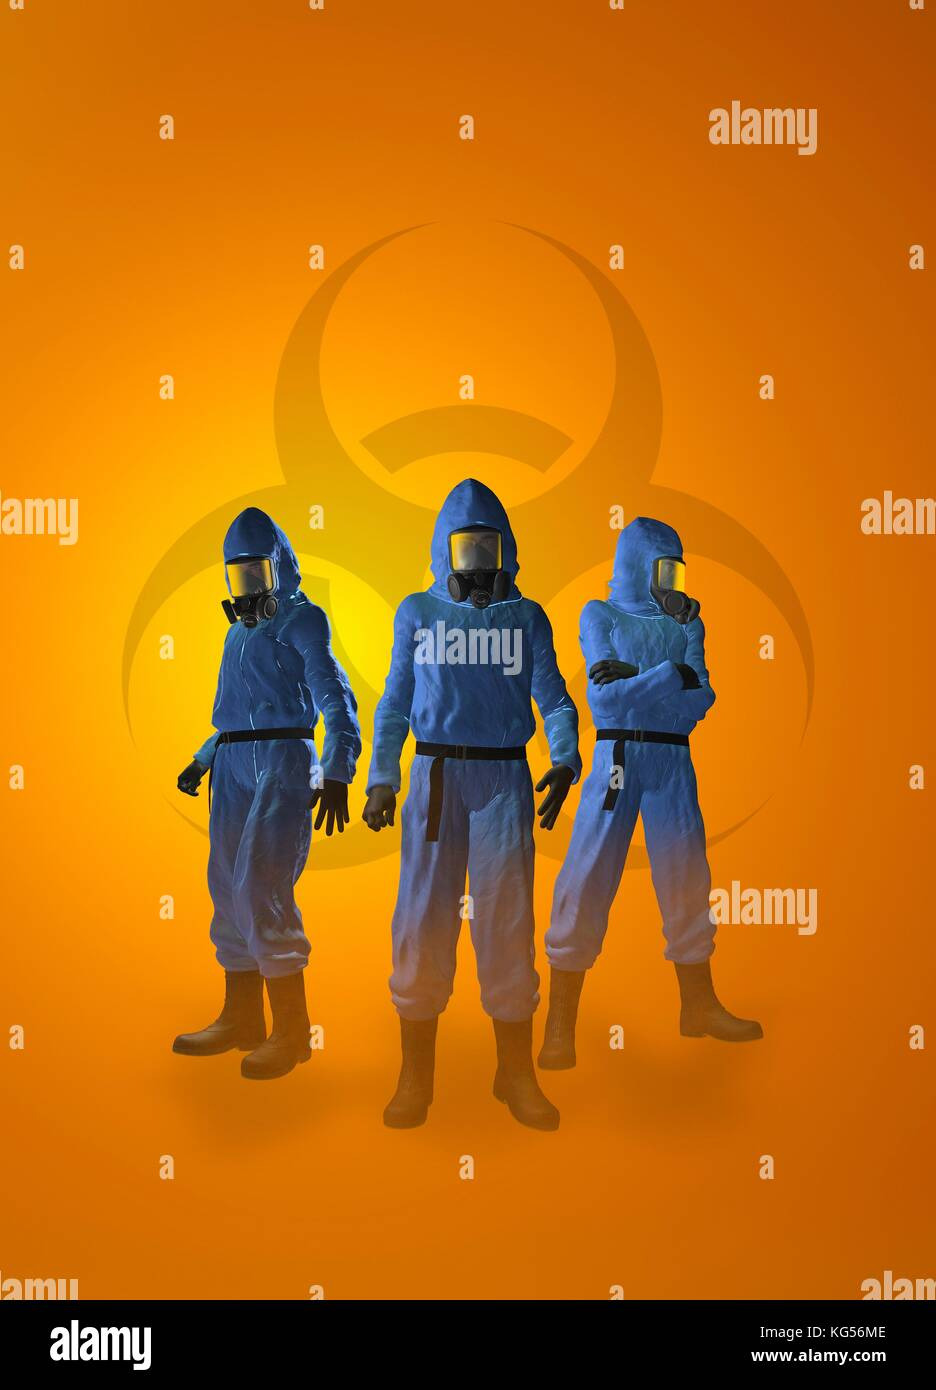 Three figures in radiation suits, illustration. - Stock Image